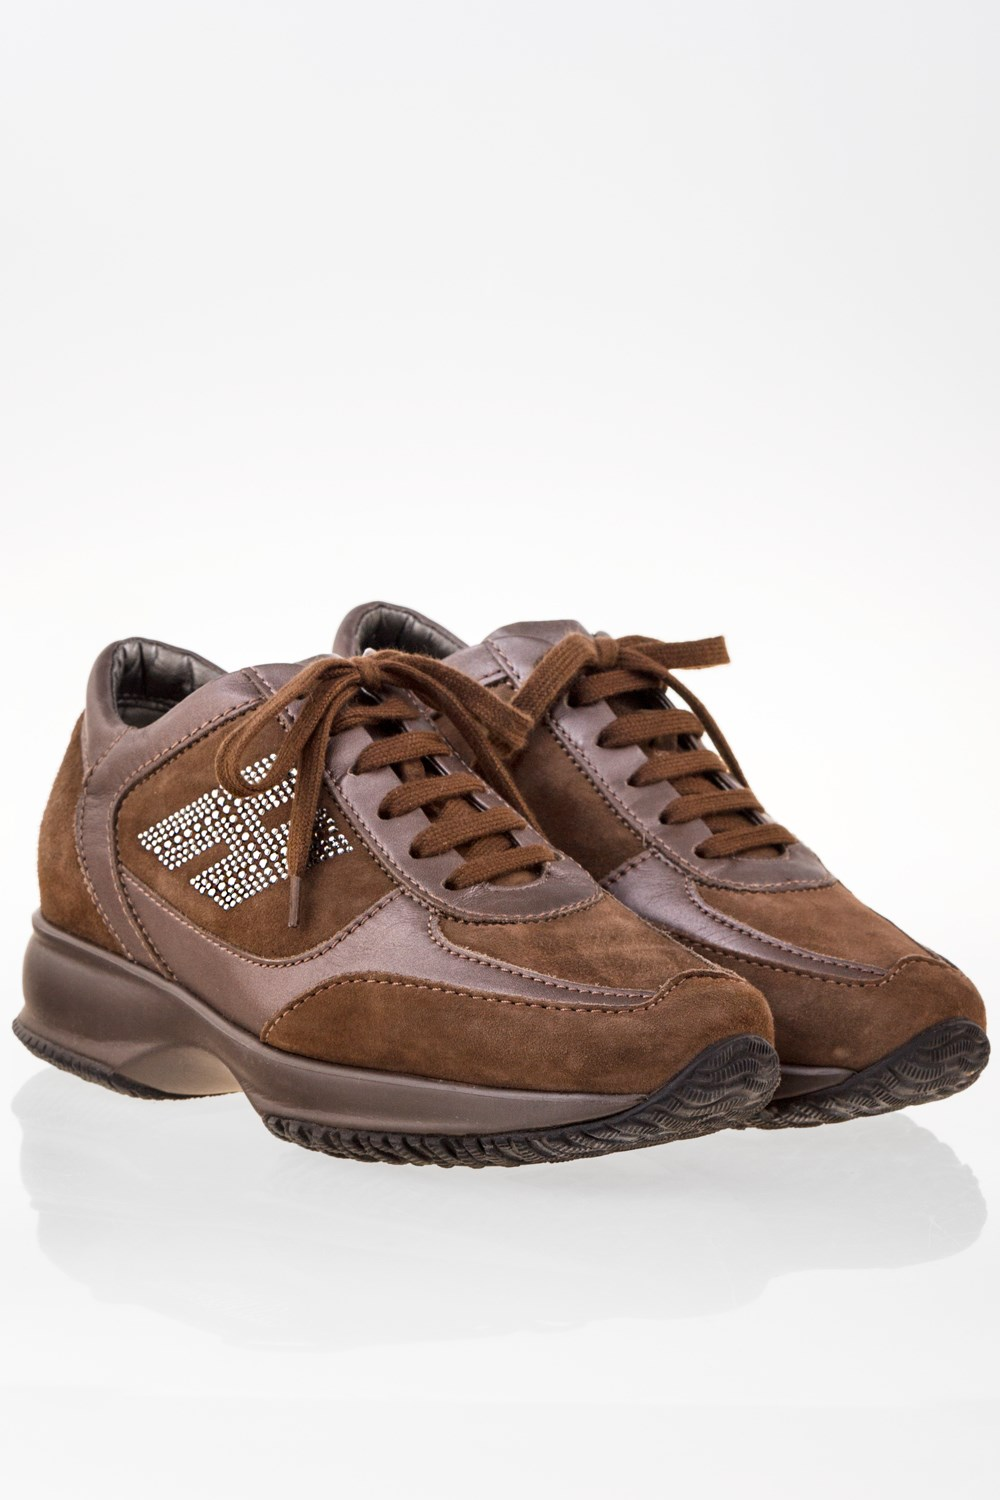 Starbags Products, Shoes, Trainers, Brown Suede Interactive Sneakers with Brown Metallic Leather / Size: 35.5 - Fit: 36.5, Starbags.gr